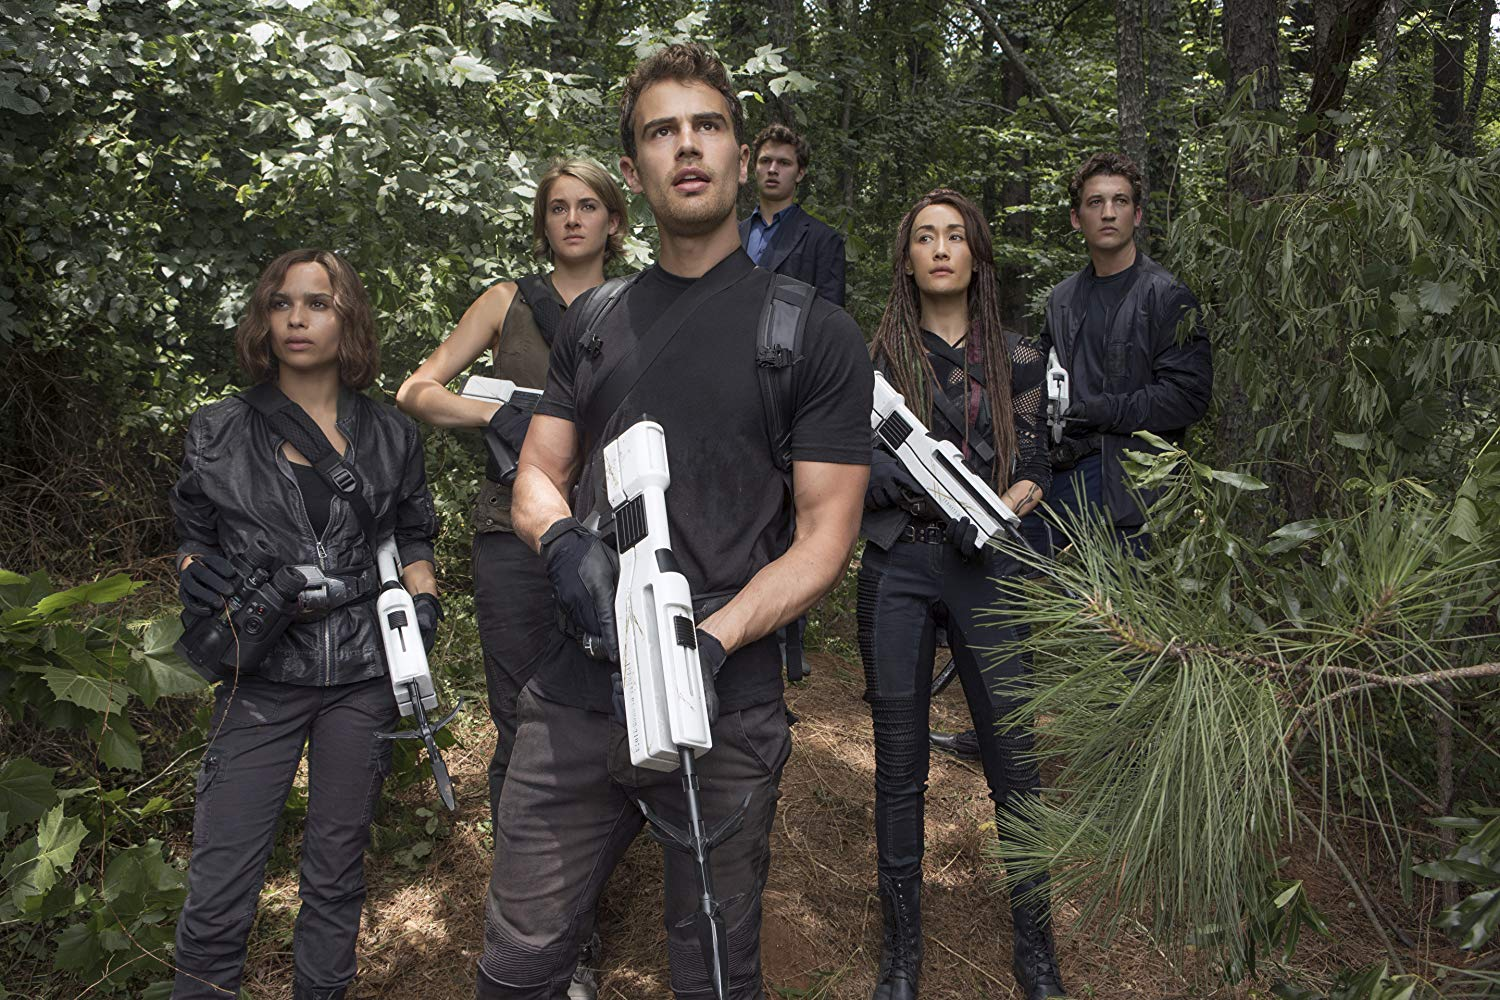 Breakout from the city - (l to r) Zoe Kravitz, Shailene Woodley, Theo James, Ansel Elgort, Maggie Q and Miles Teller in Allegiant (2016)